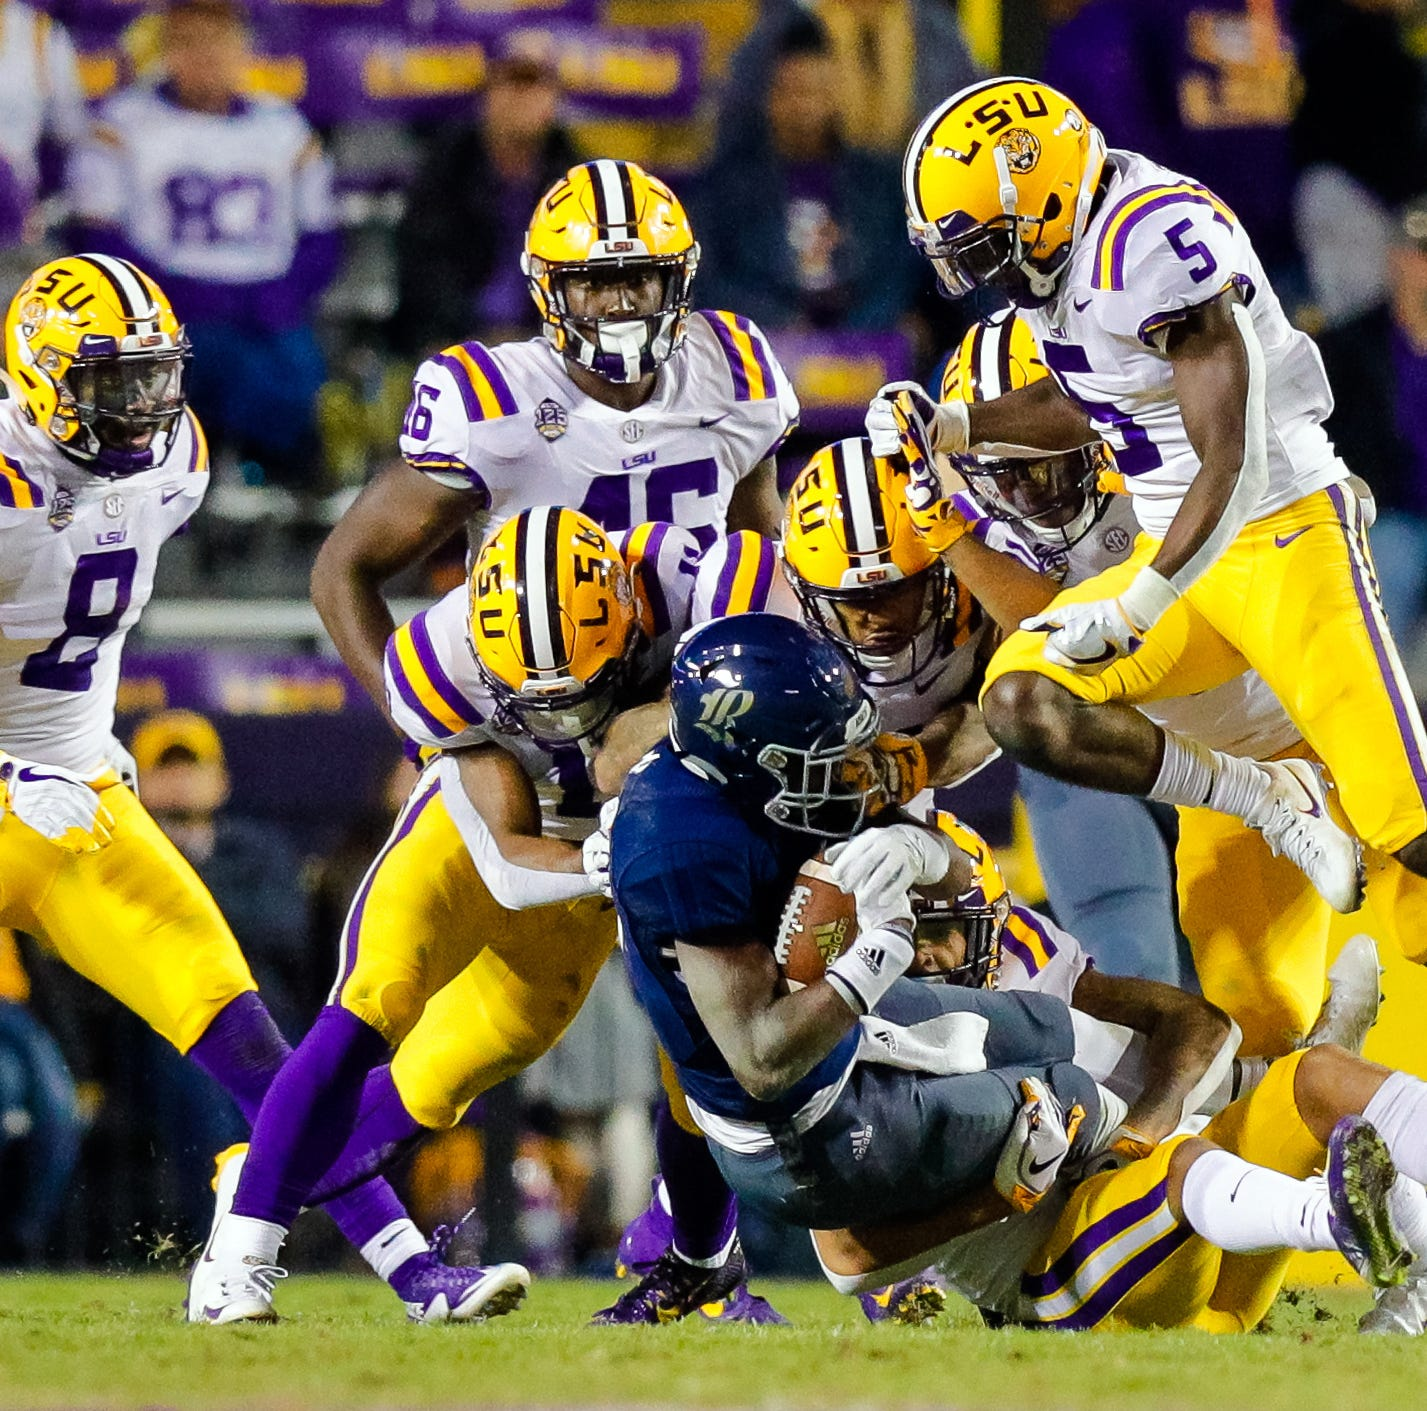 LSU rips Rice, 42-10, behind season-high 372 yards passing, which bodes well for Texas A&M